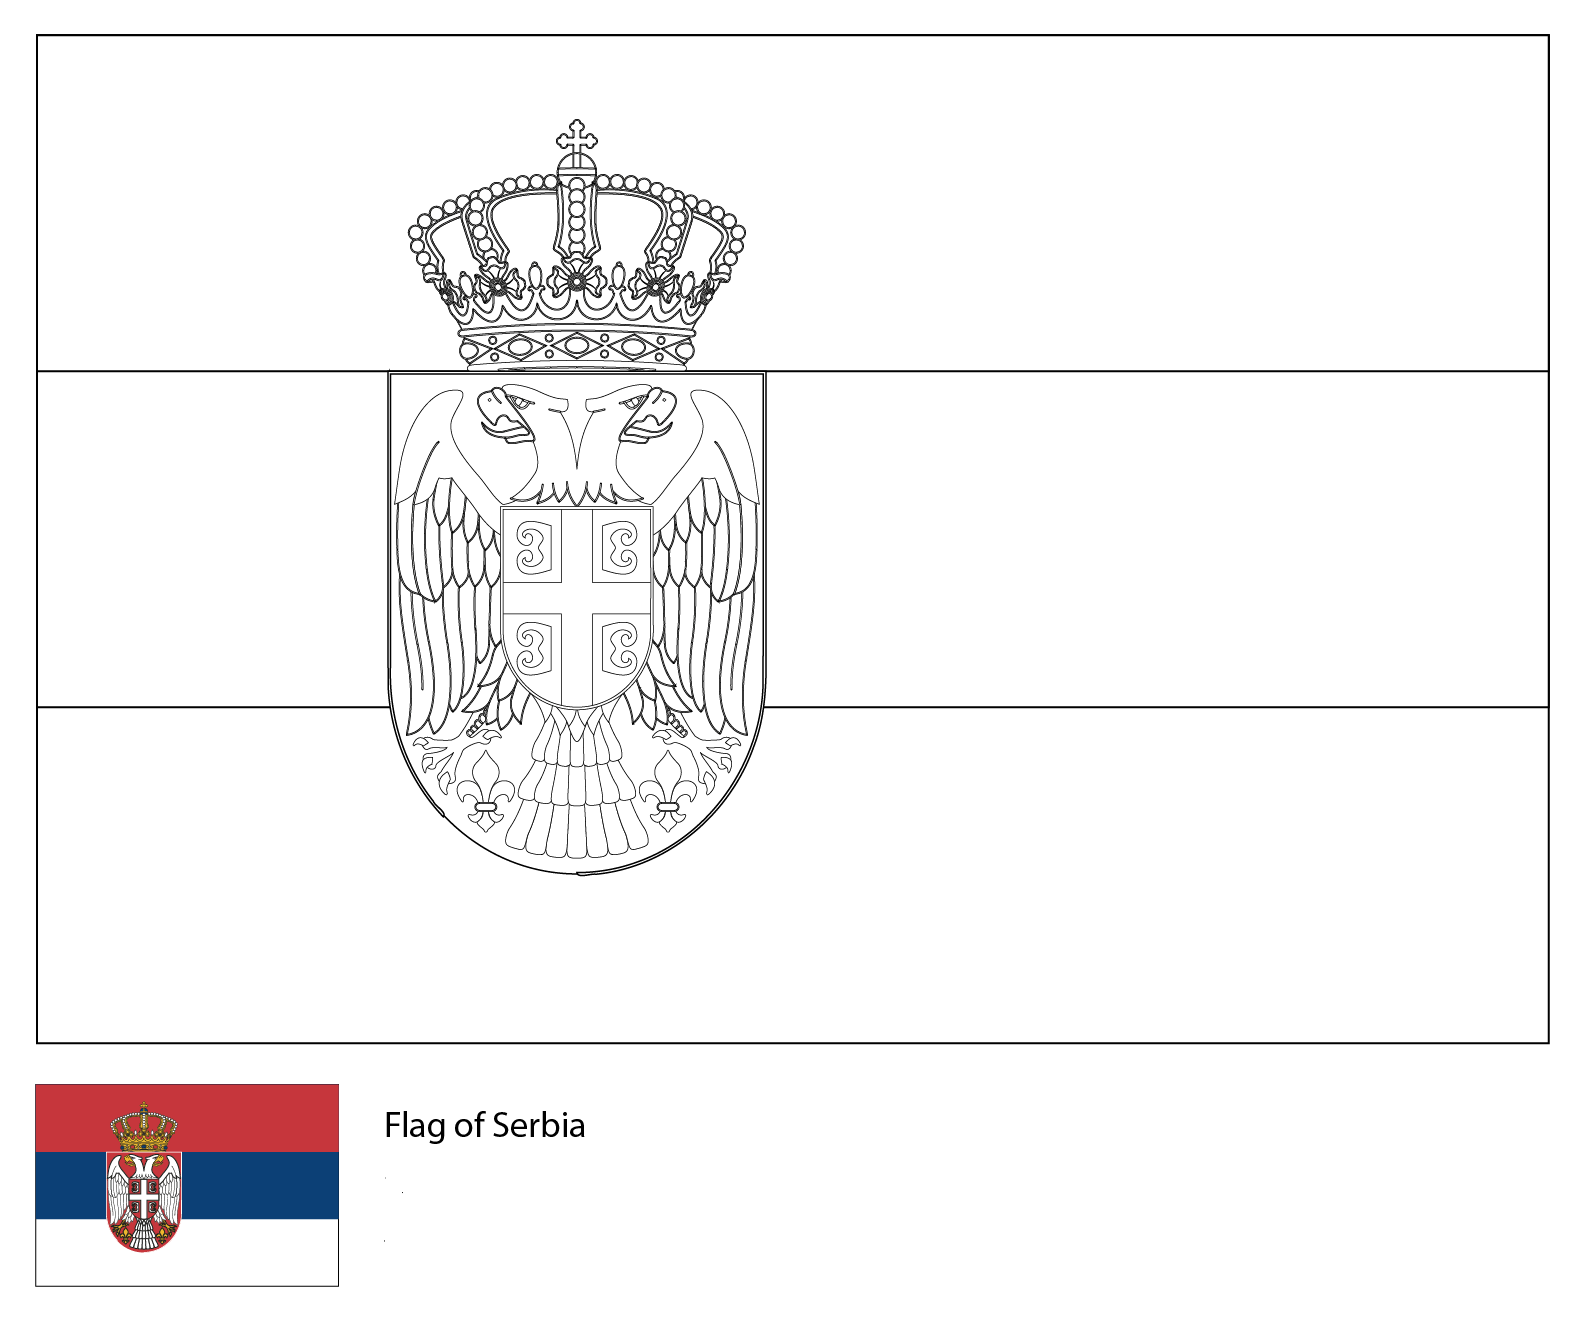 Flag of Serbia-World Cup 2018